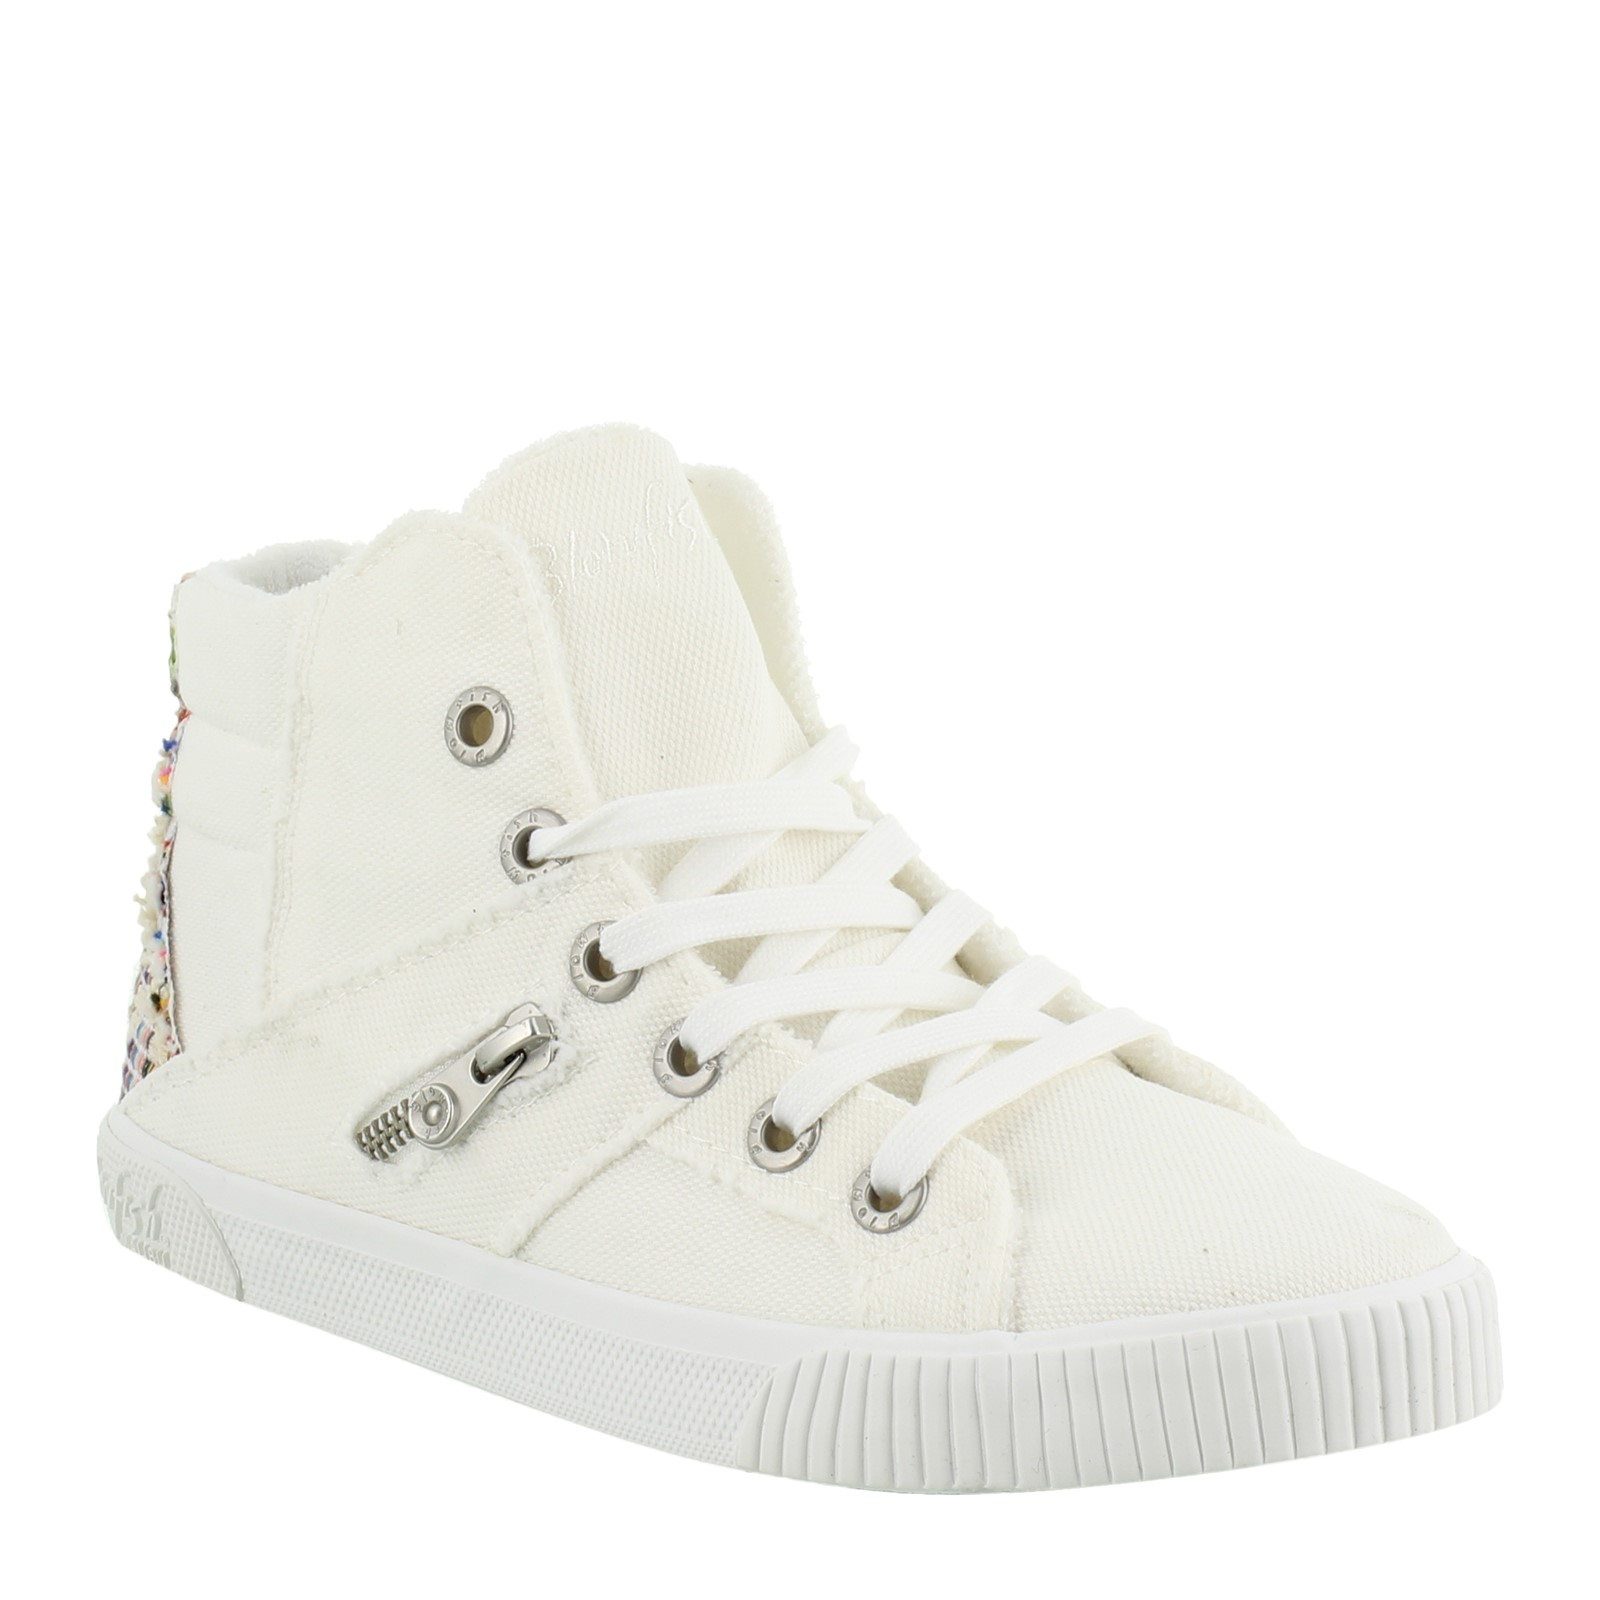 Women's Blowfish, Fruitcake High Top Sneaker